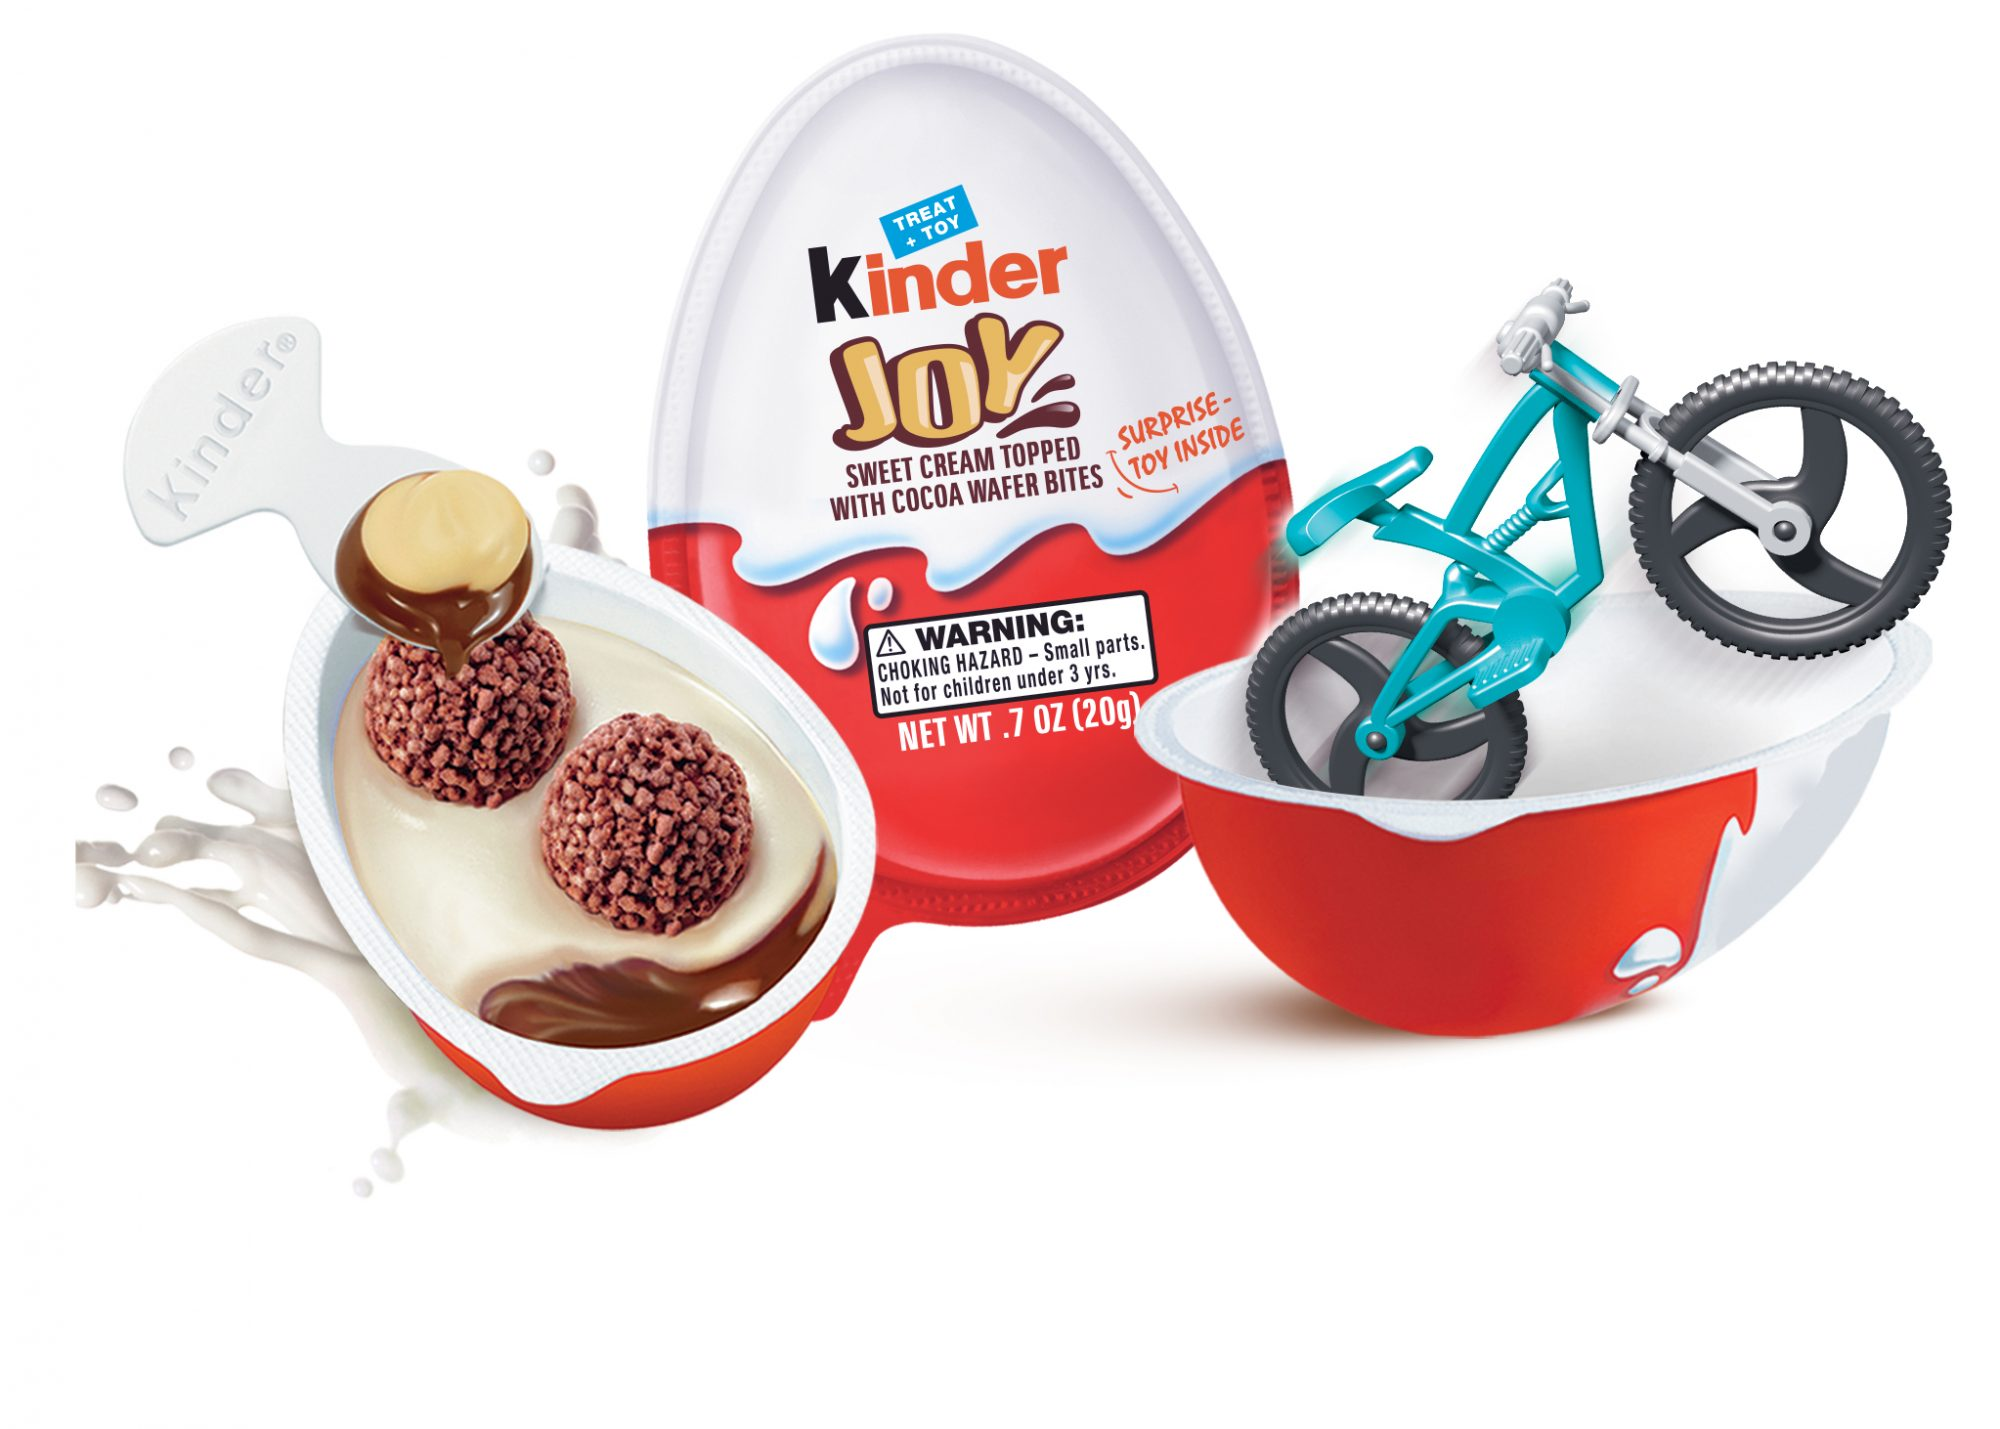 Kinder Egg Is Coming to America